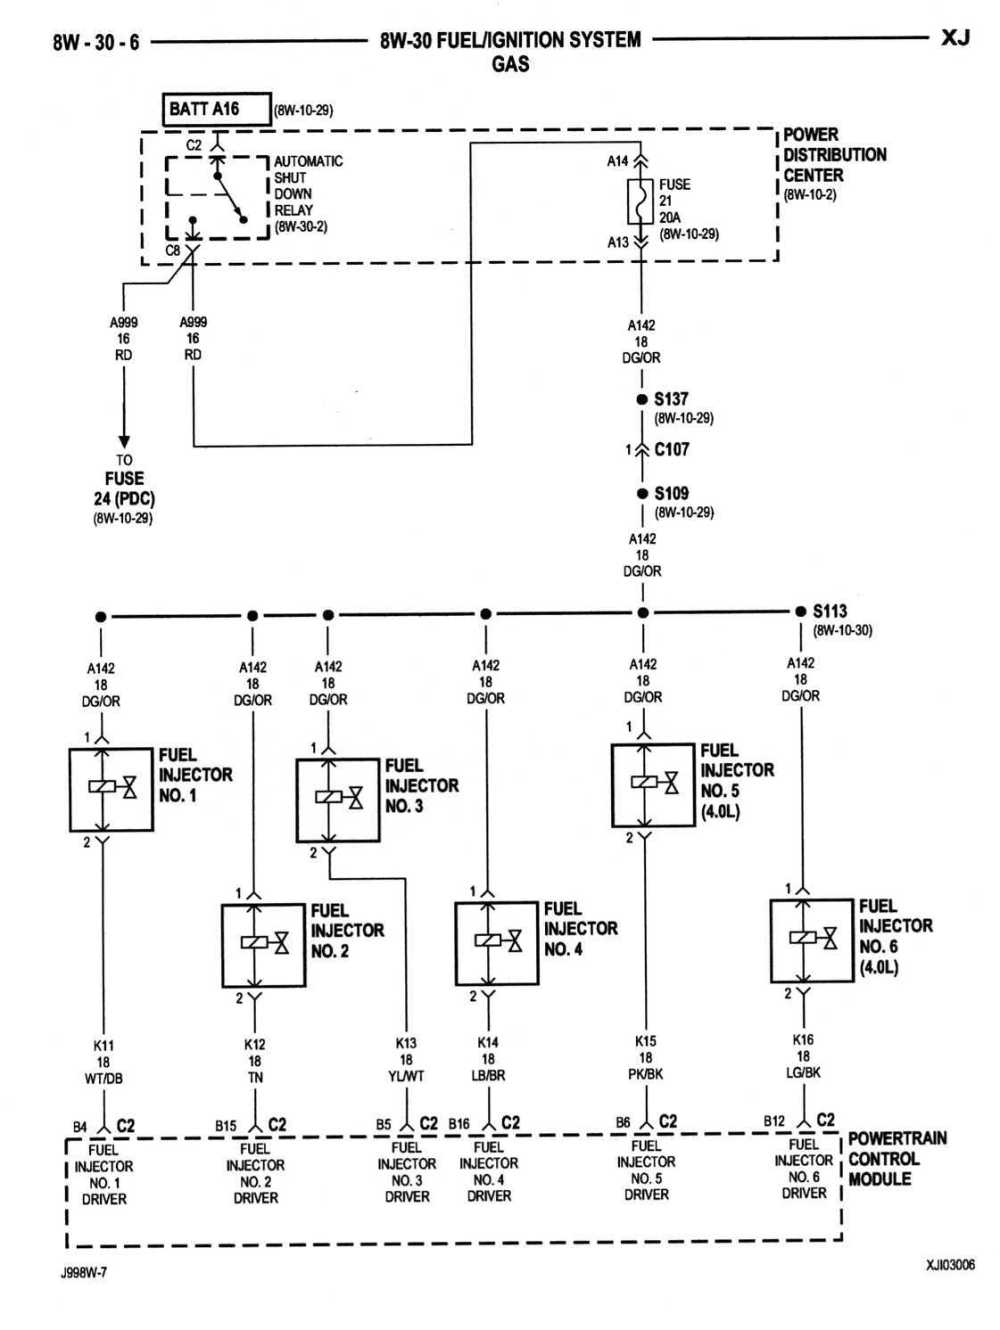 medium resolution of 1999 jeep grand cherokee 4 0l engine fuel injector diagram wiring 1999 jeep grand cherokee 4 0l engine fuel injector diagram